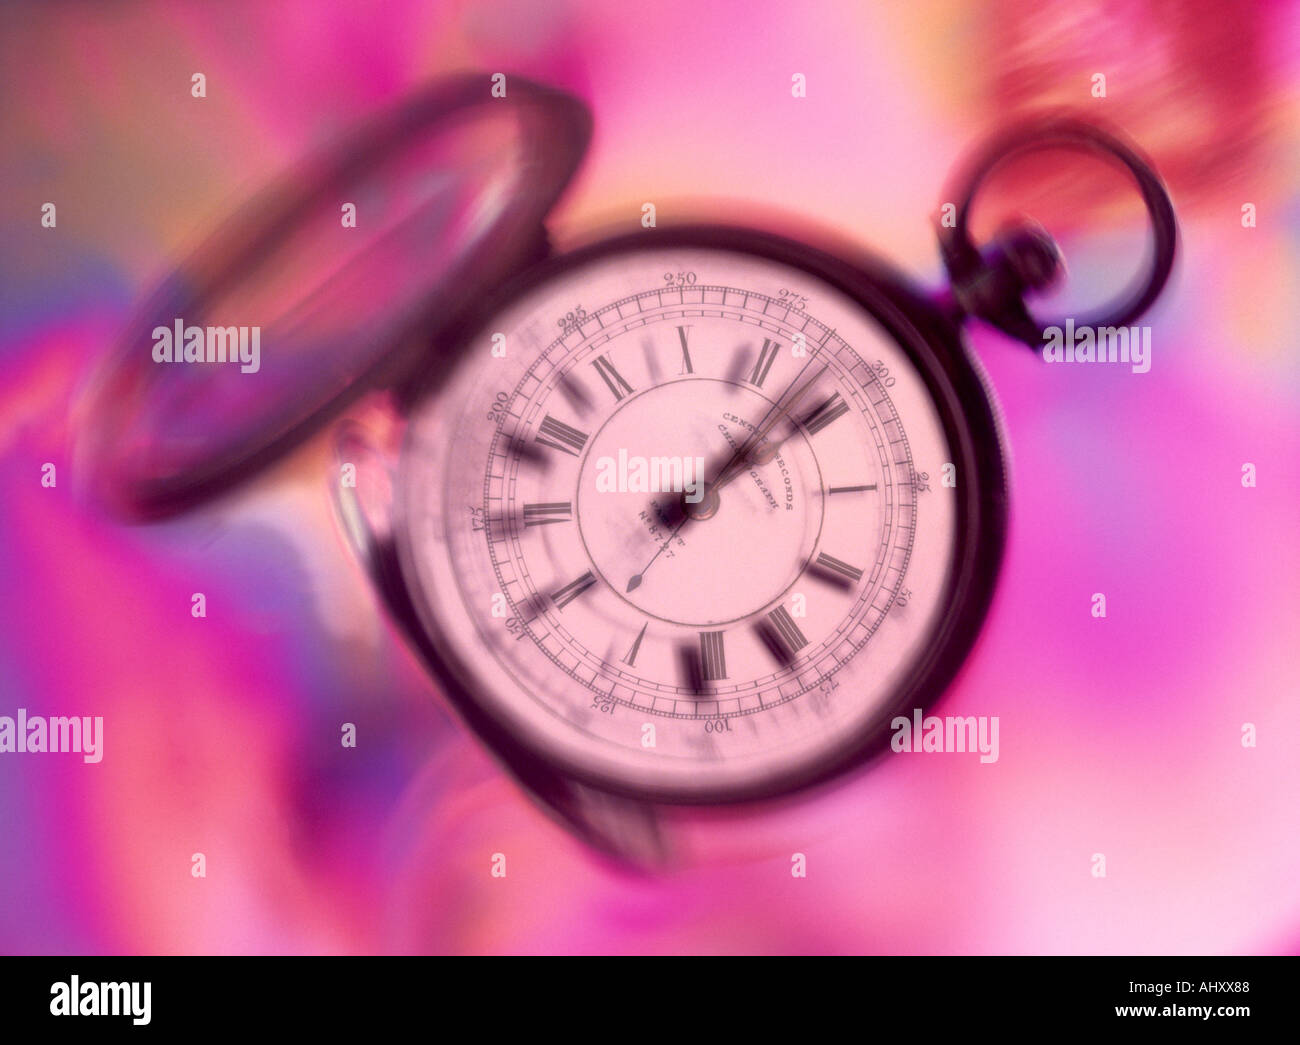 Time passing an old fashioned chronometer with Roman numerals floats through time - Stock Image